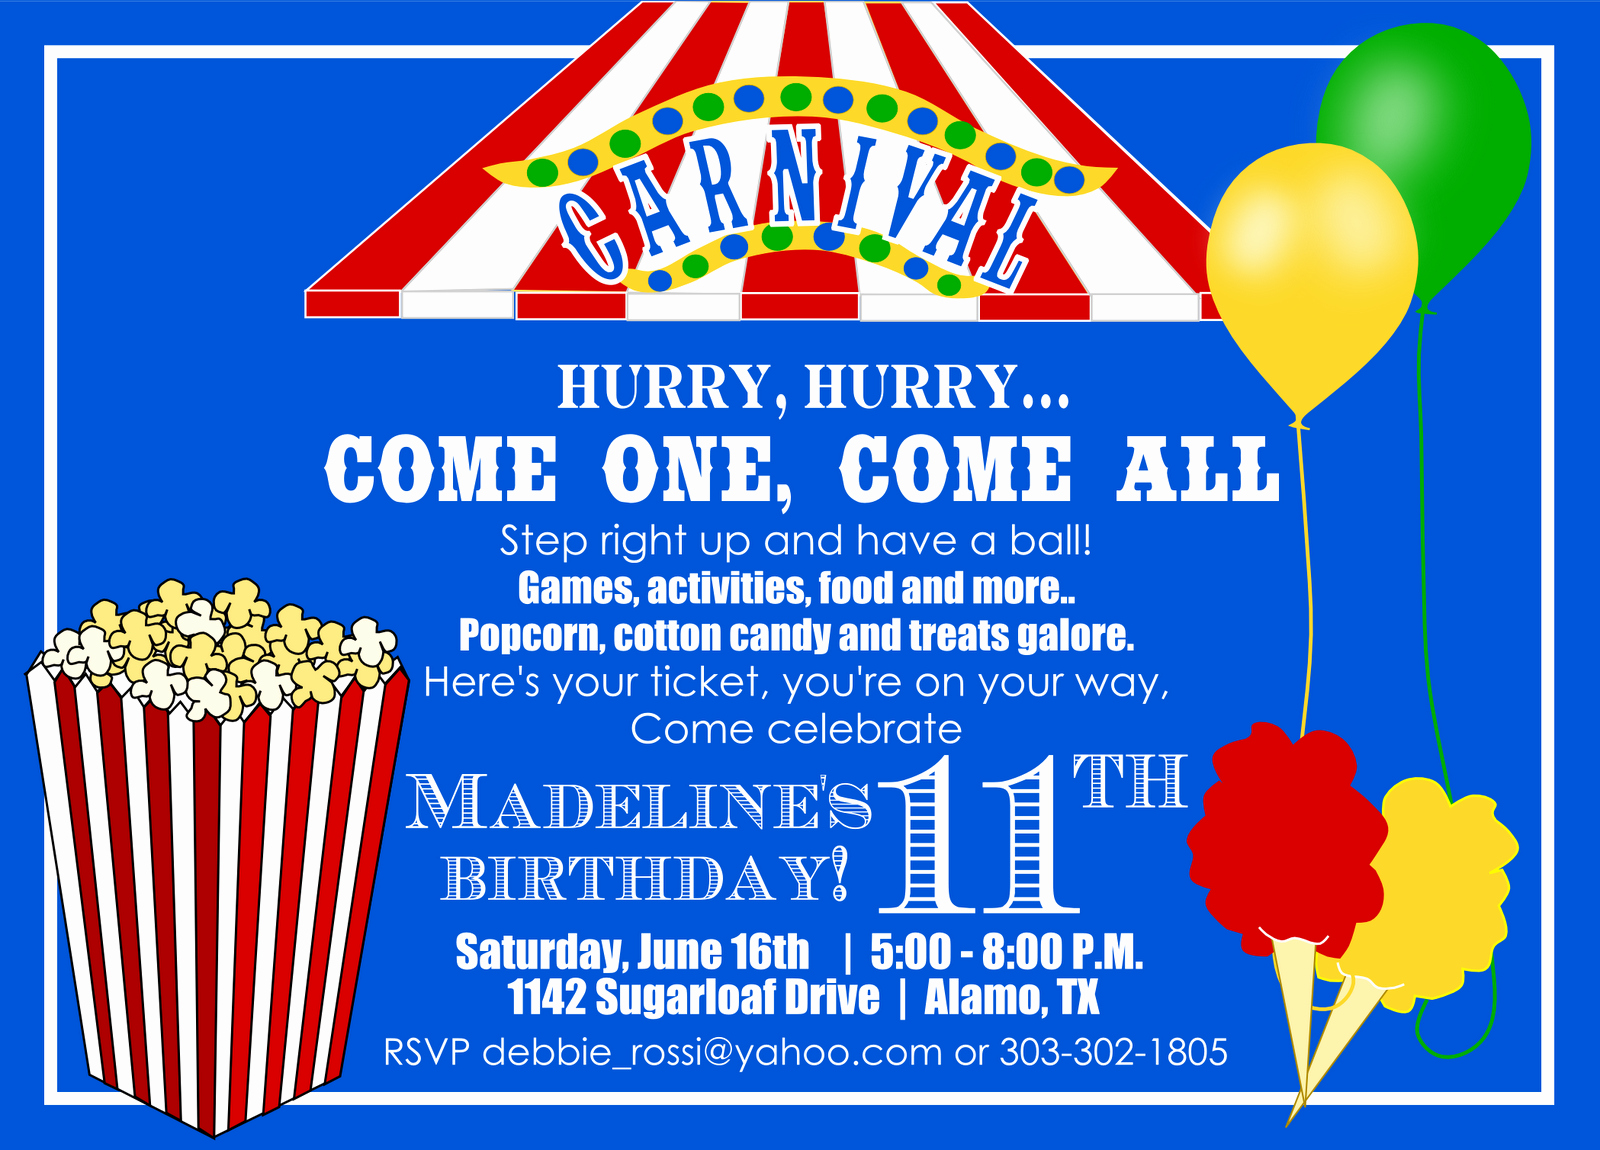 Carnival Birthday Party Invitations Awesome 40th Birthday Ideas Carnival Birthday Invitation Template Free